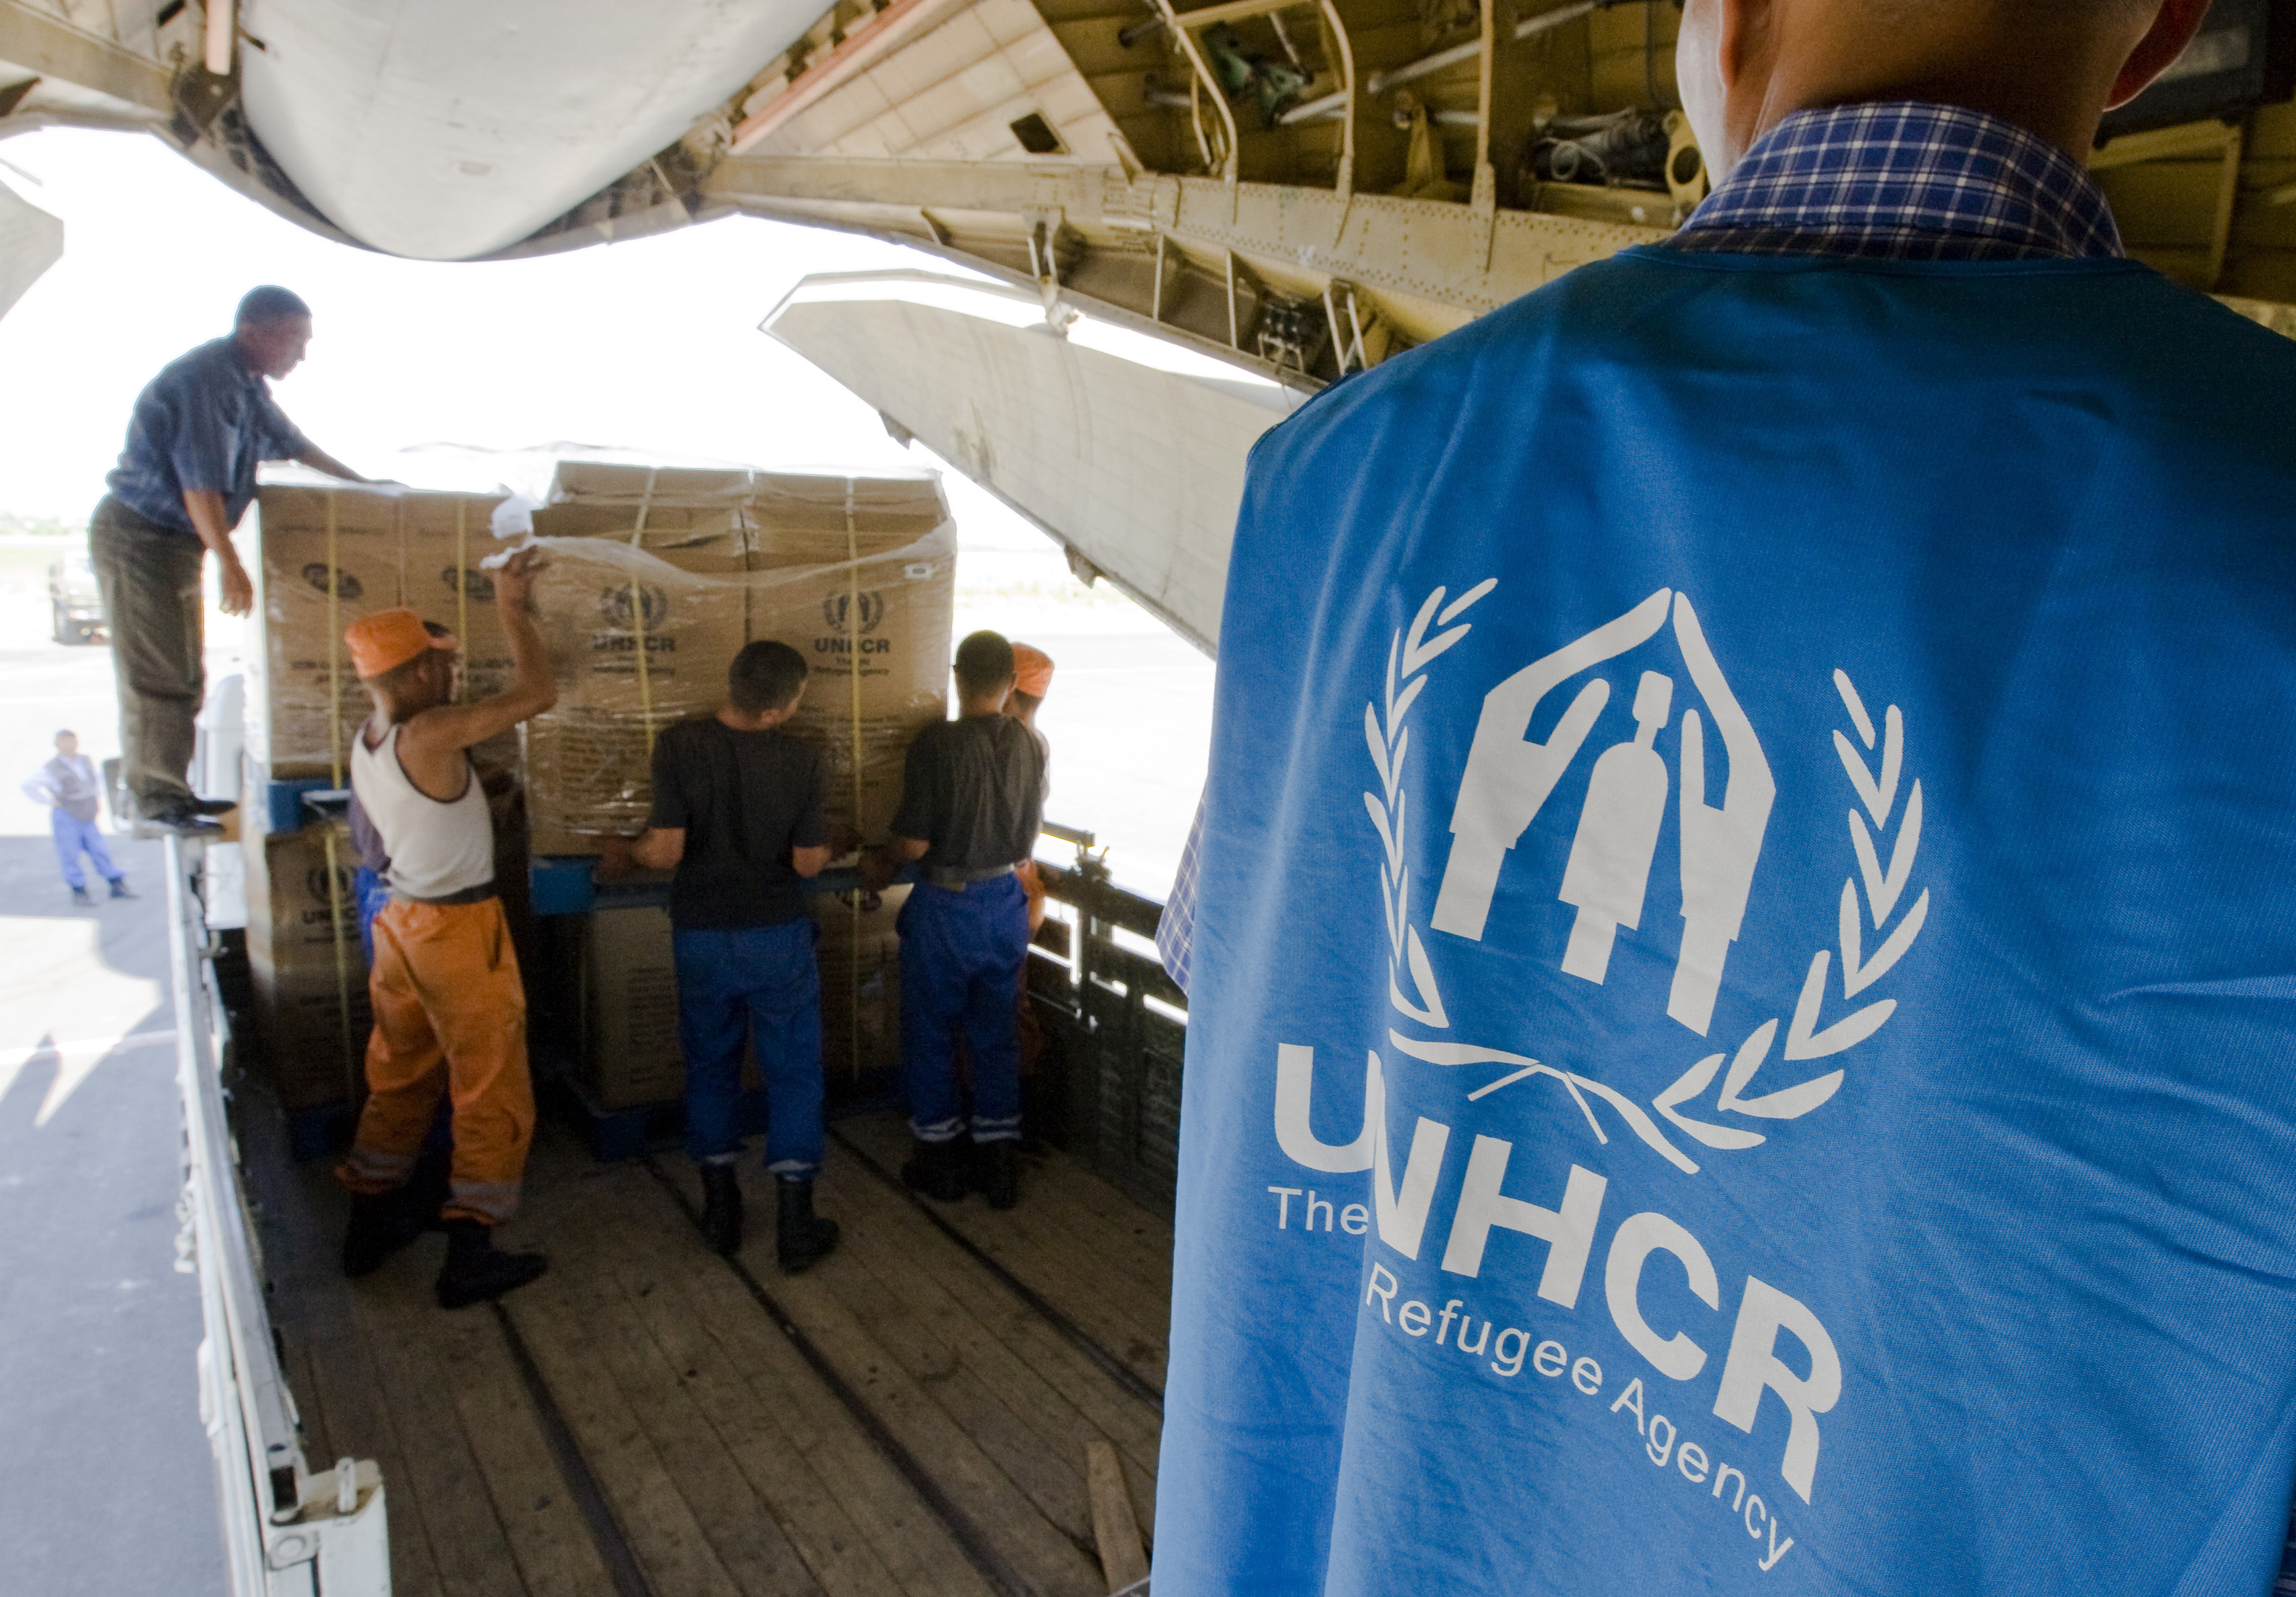 UNHCR representatives distributing aid.